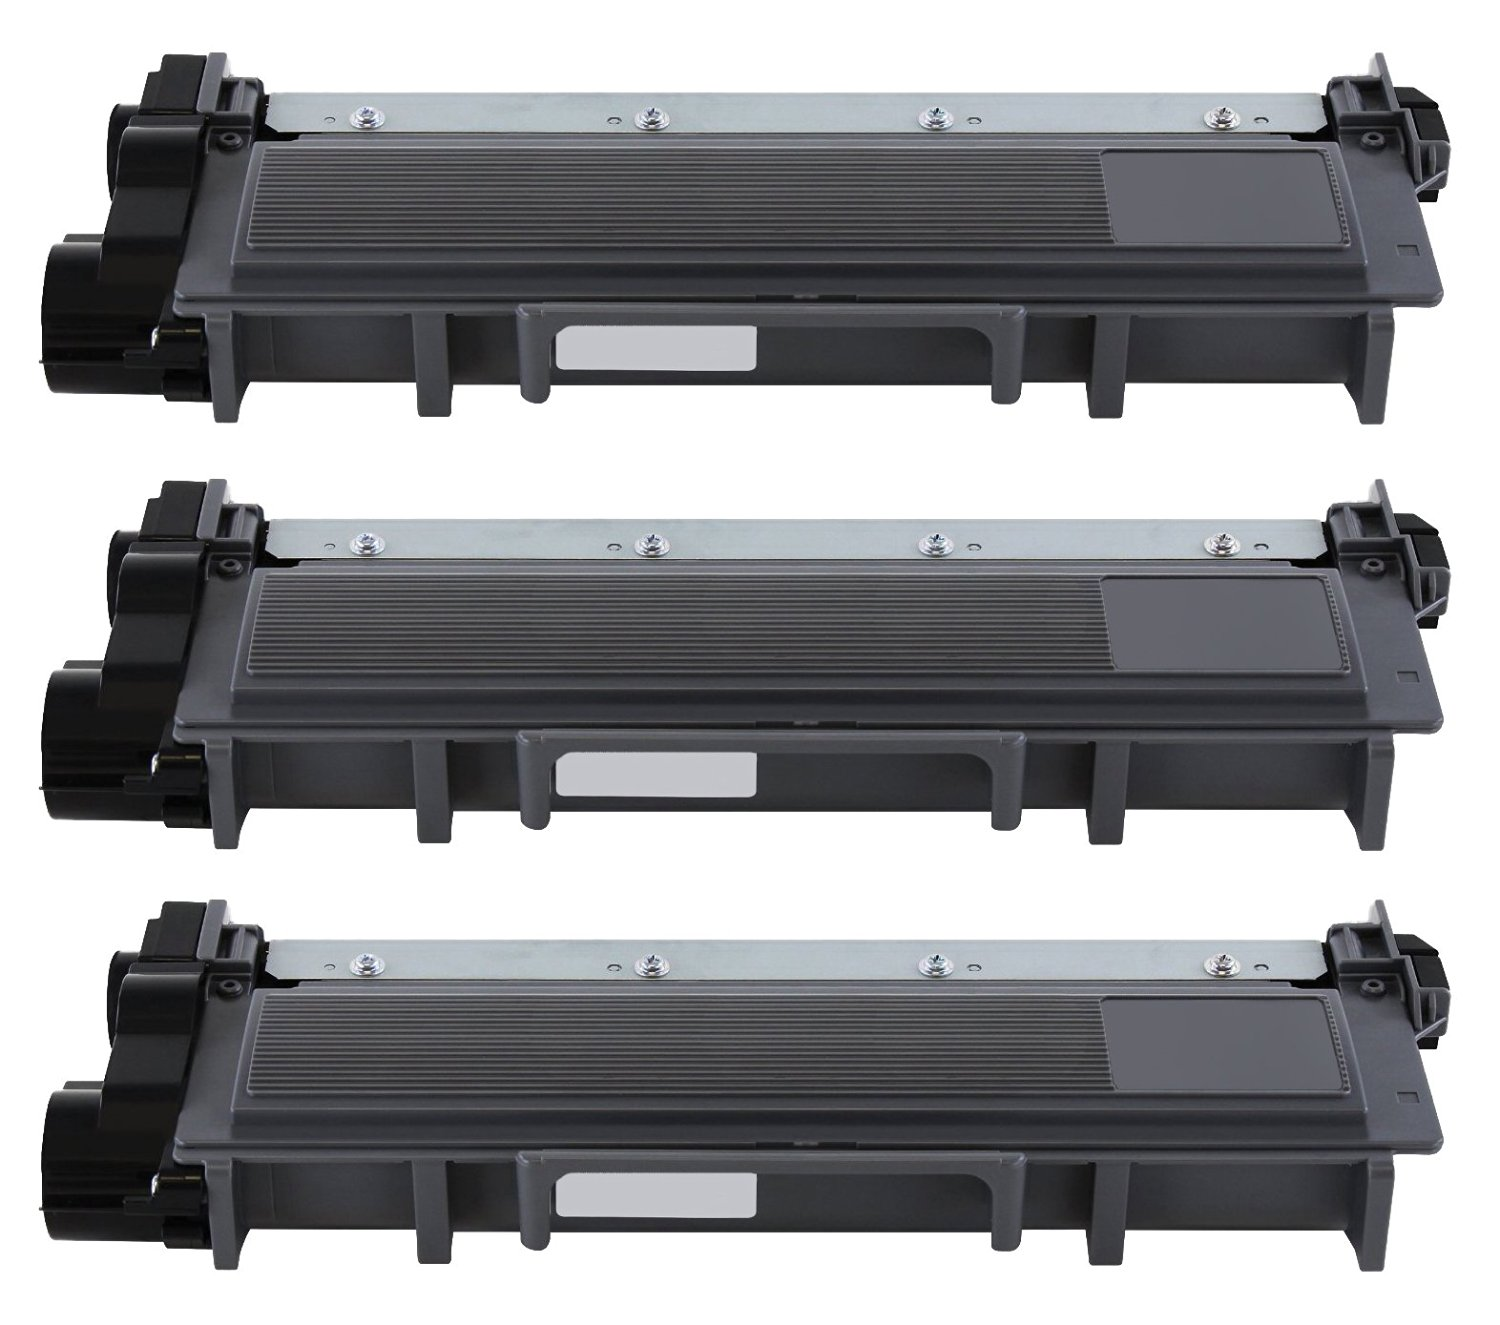 Printronic 3 Pack Compatible Brother TN630 TN660 Toner Cartridge Black for Brother MFC-L2700DW HL-L2340DW MFC-L2740DW DCP-L2520DW DCP-L2540DW HL-L2360DW HL-L2380DW HL-L2300D MFC-L2720DW HL-L2320D MFC-L2705DW Printer